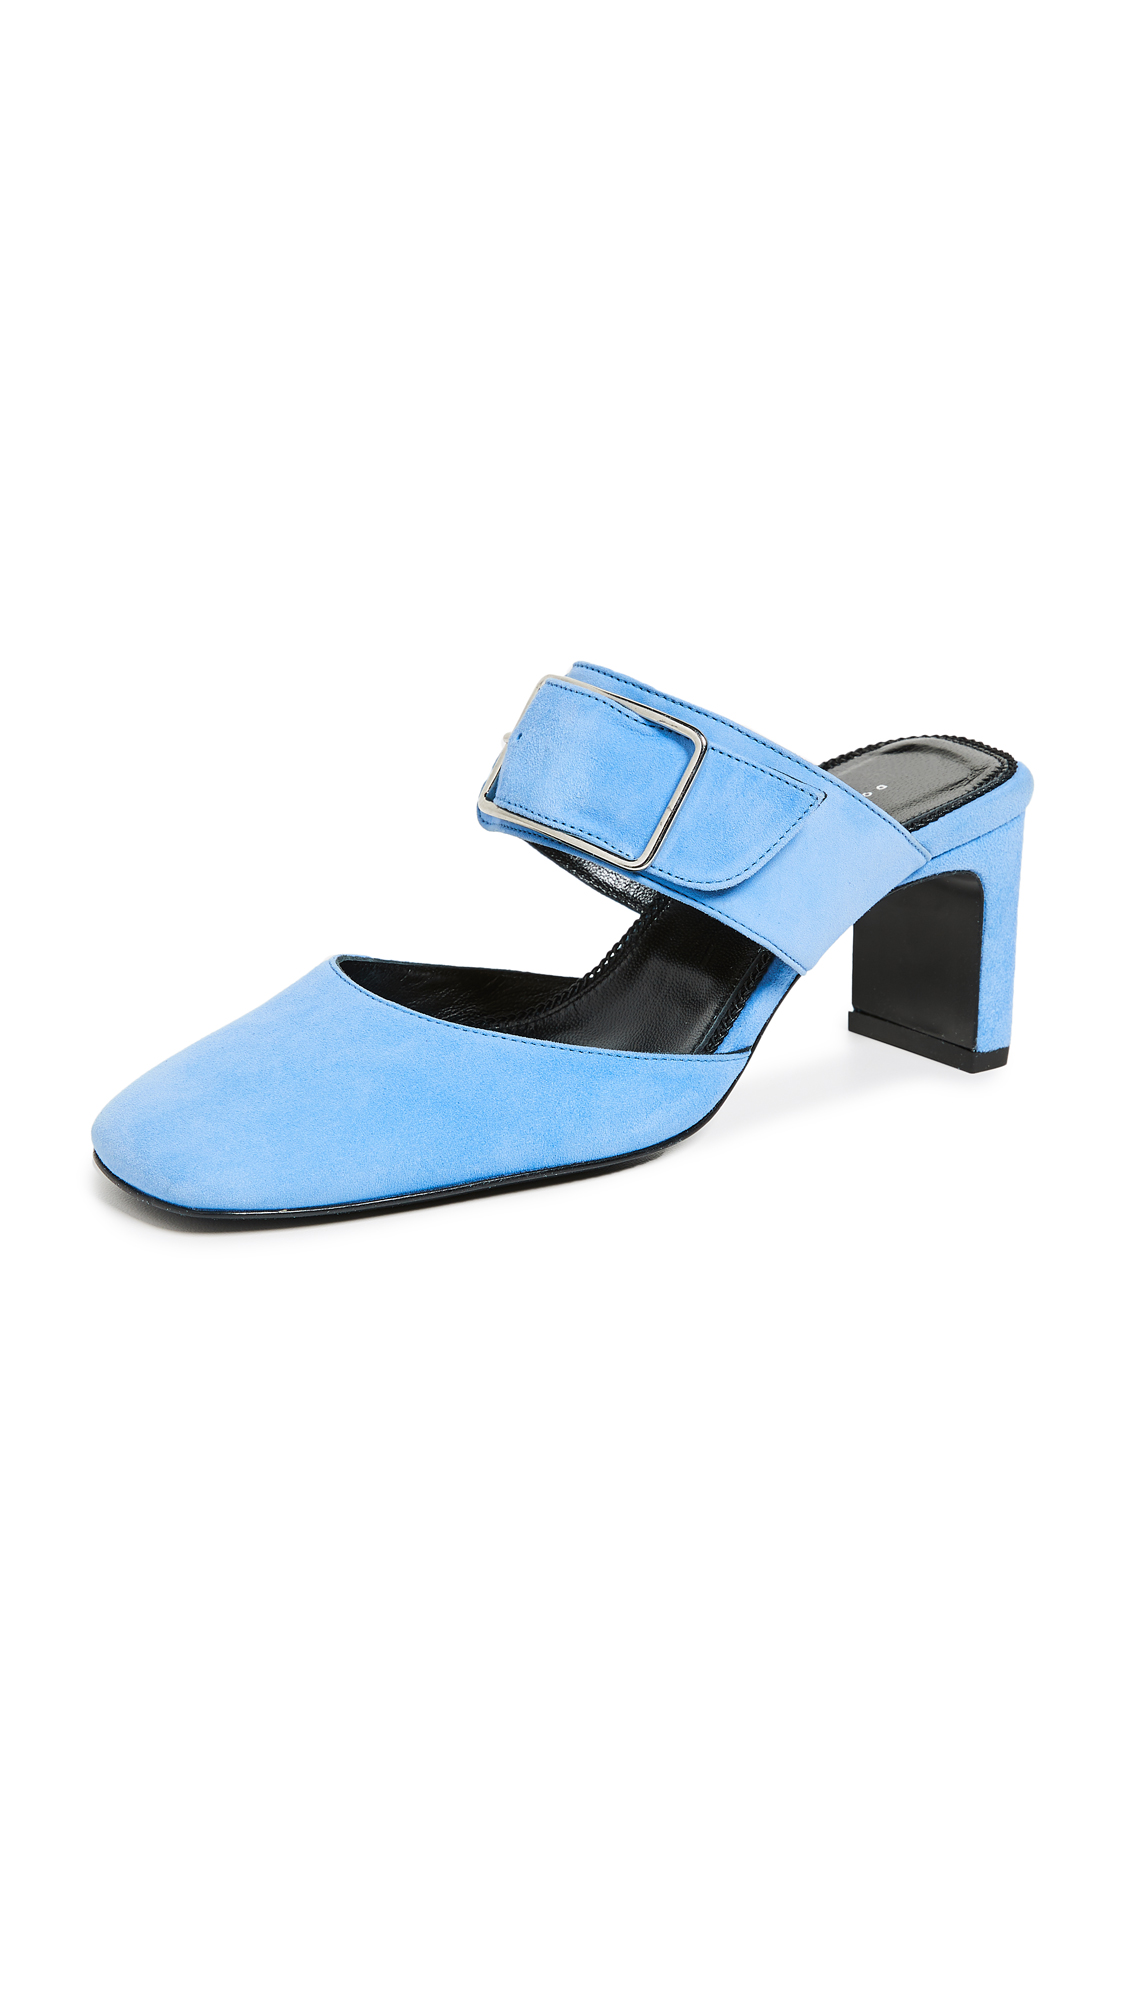 Dorateymur Everyday Mules - Salvia Blue